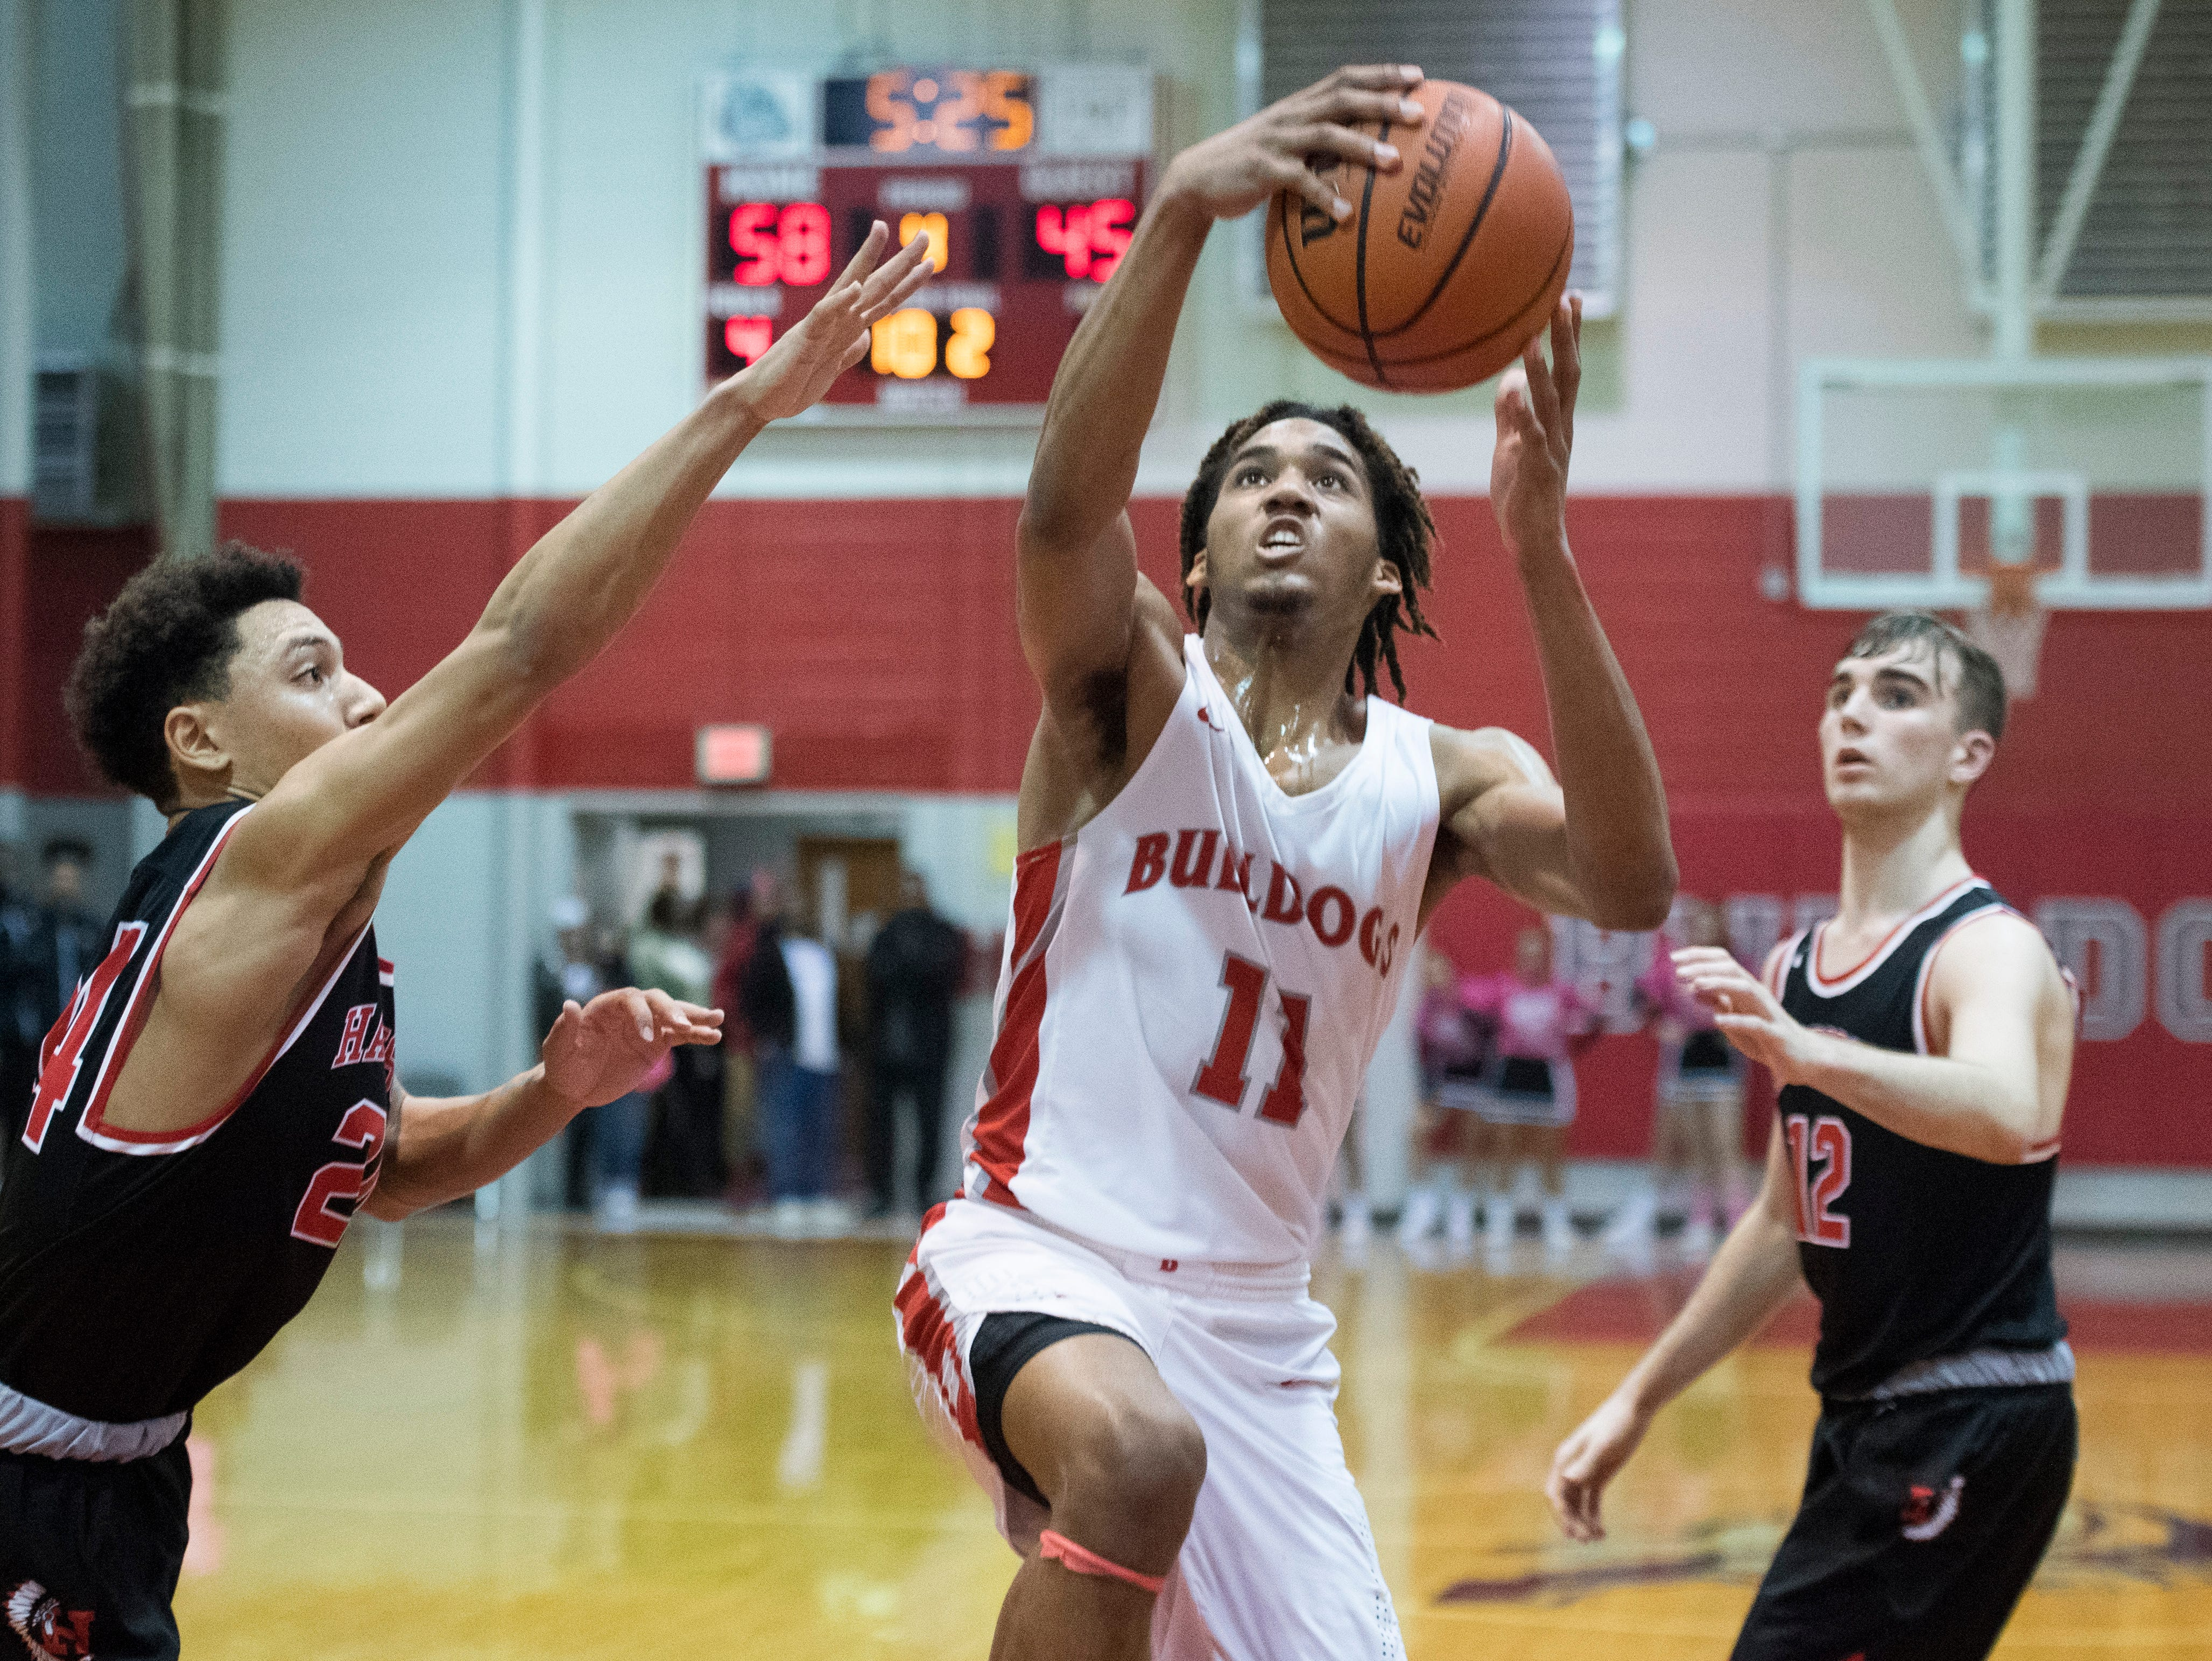 Bosse's George Madison (11) takes a shot during the Harrison vs Bosse game at Bosse High School Tuesday, Feb. 12, 2019. The Bosse Bulldogs won 74-56.